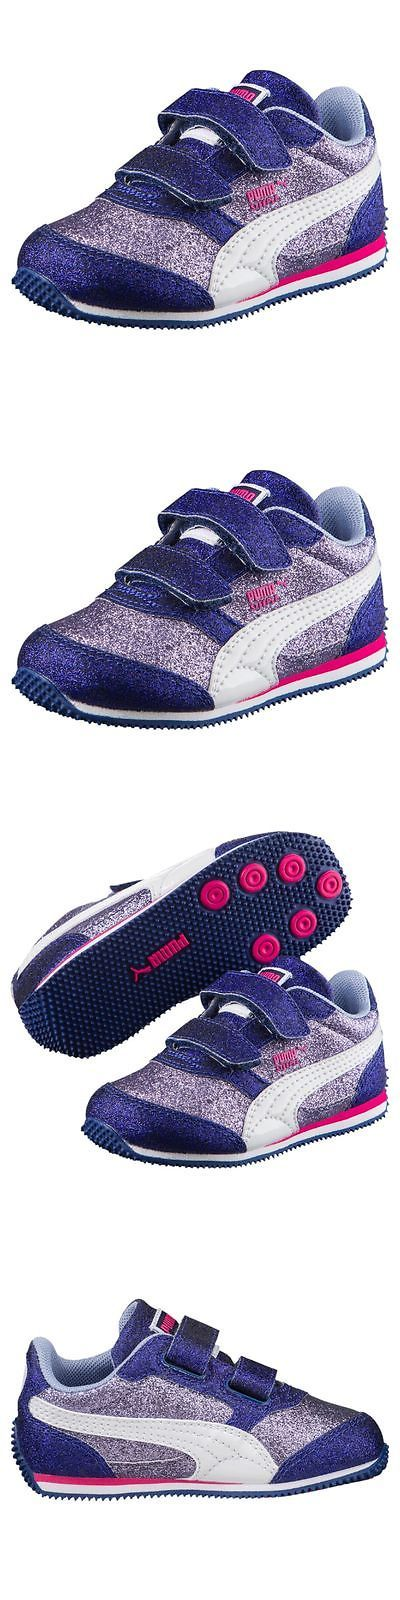 Baby Shoes 147285: Puma Steeple Glitz Glam Kids Sneakers -> BUY IT NOW ONLY: $34.99 on eBay!